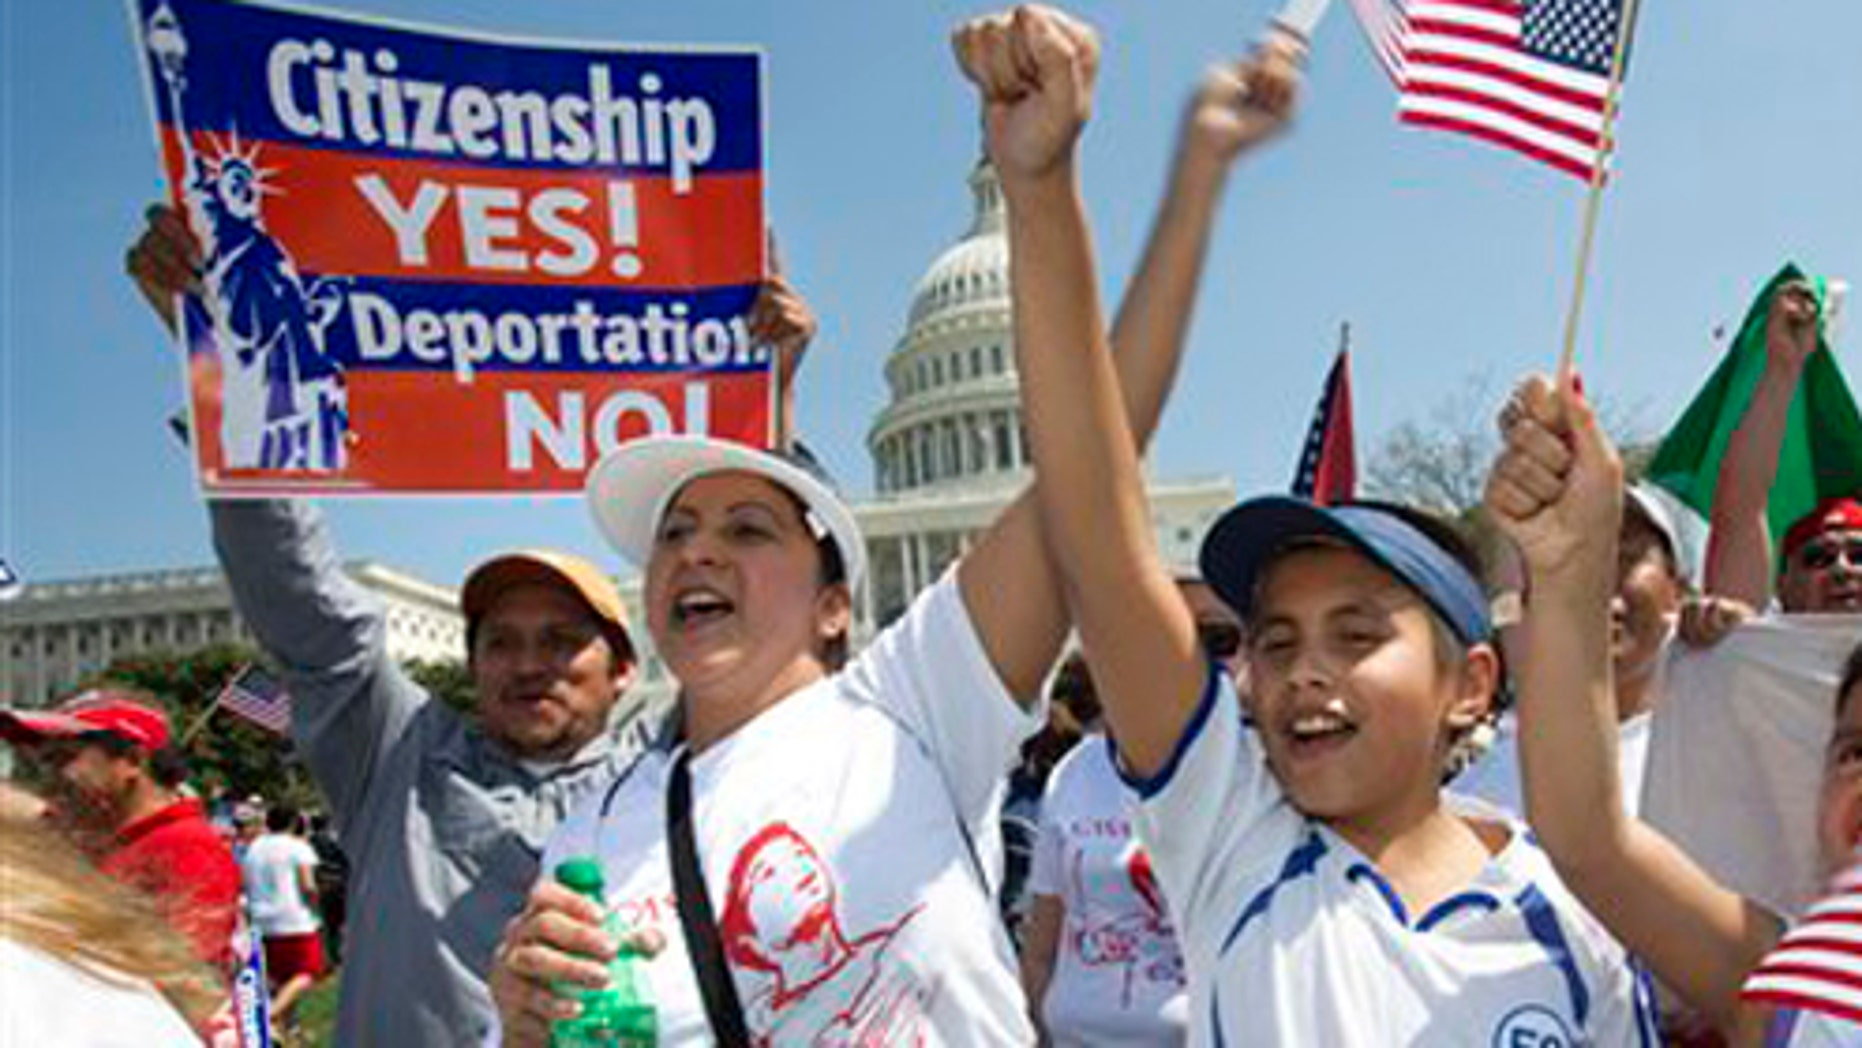 """Adita Chicas, left, and her son Jessy Chicas, 10, of Woodbridge, Va., cheer as they arrive at the """"Rally for Citizenship"""" on Capitol, Hill in Washington, Wednesday, April 10, 2013, where tens of thousands of immigrants and their supporters are expected to rally for immigration reform. Bipartisan groups in the House and Senate are said to be completing immigration bills that include a pathway to citizenship for the nation's 11 million immigrants with illegal status. (AP Photo/Jacquelyn Martin)"""